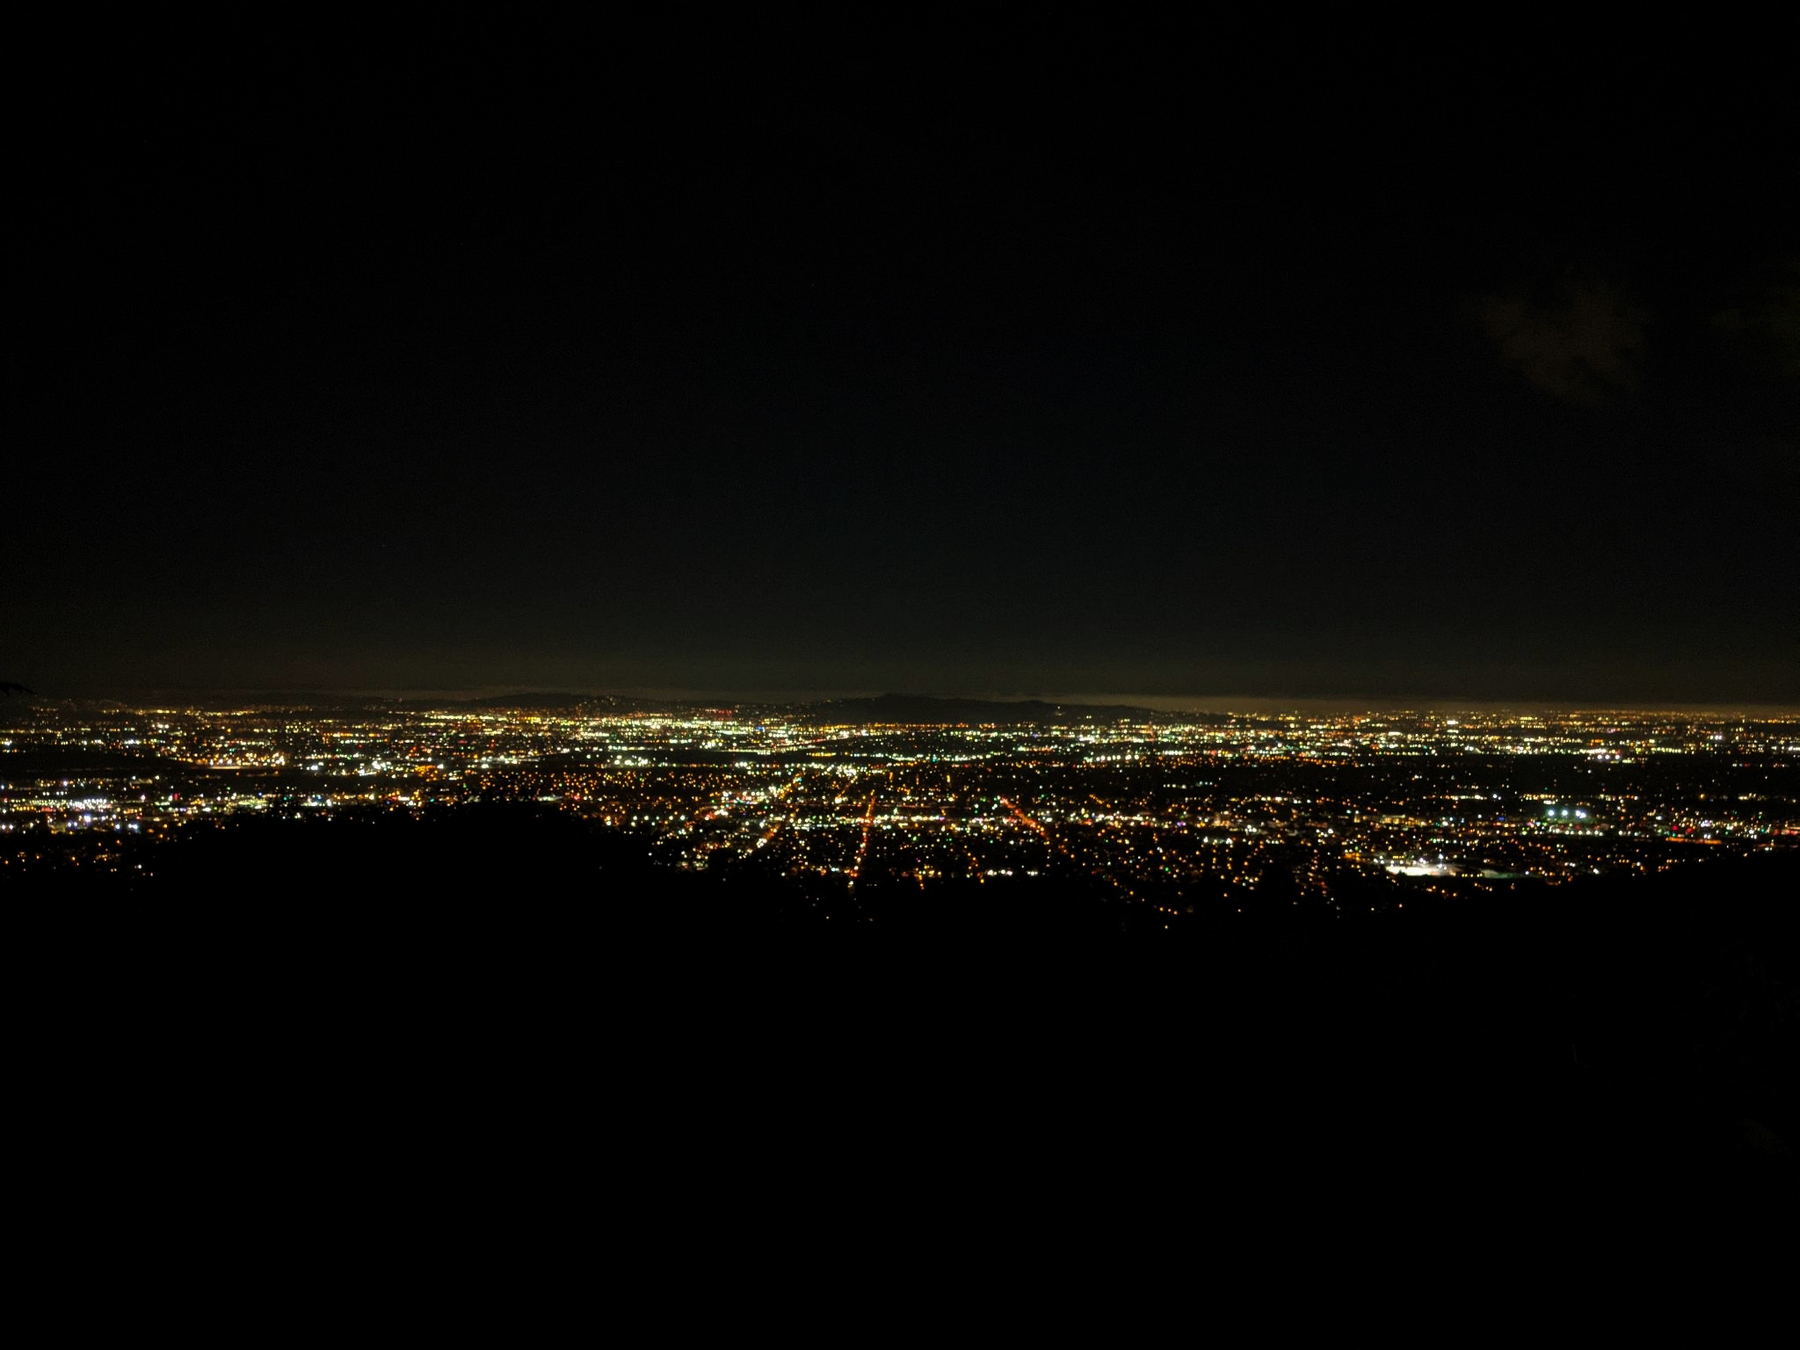 A photo looking out over Los Angeles county at night.